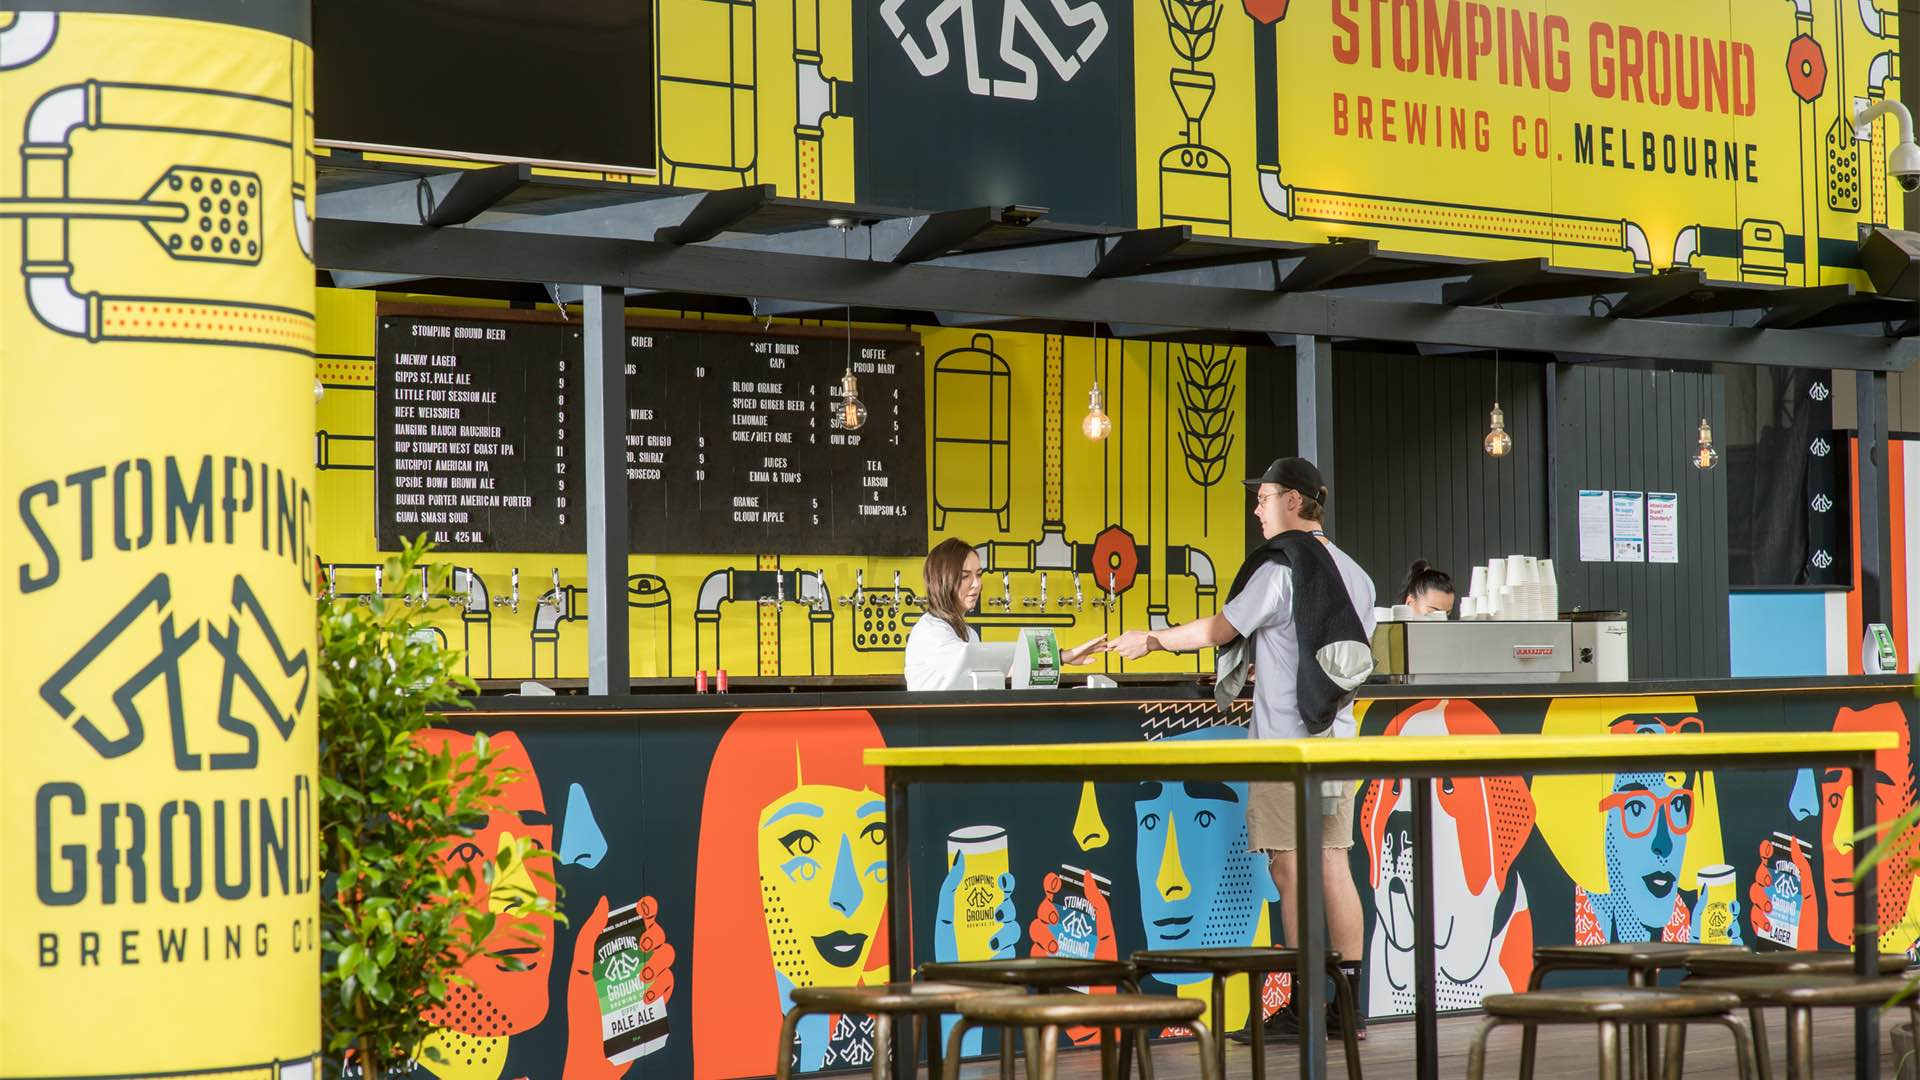 Stomping Ground Has Opened a Pop-Up Beer Garden at Melbourne Airport